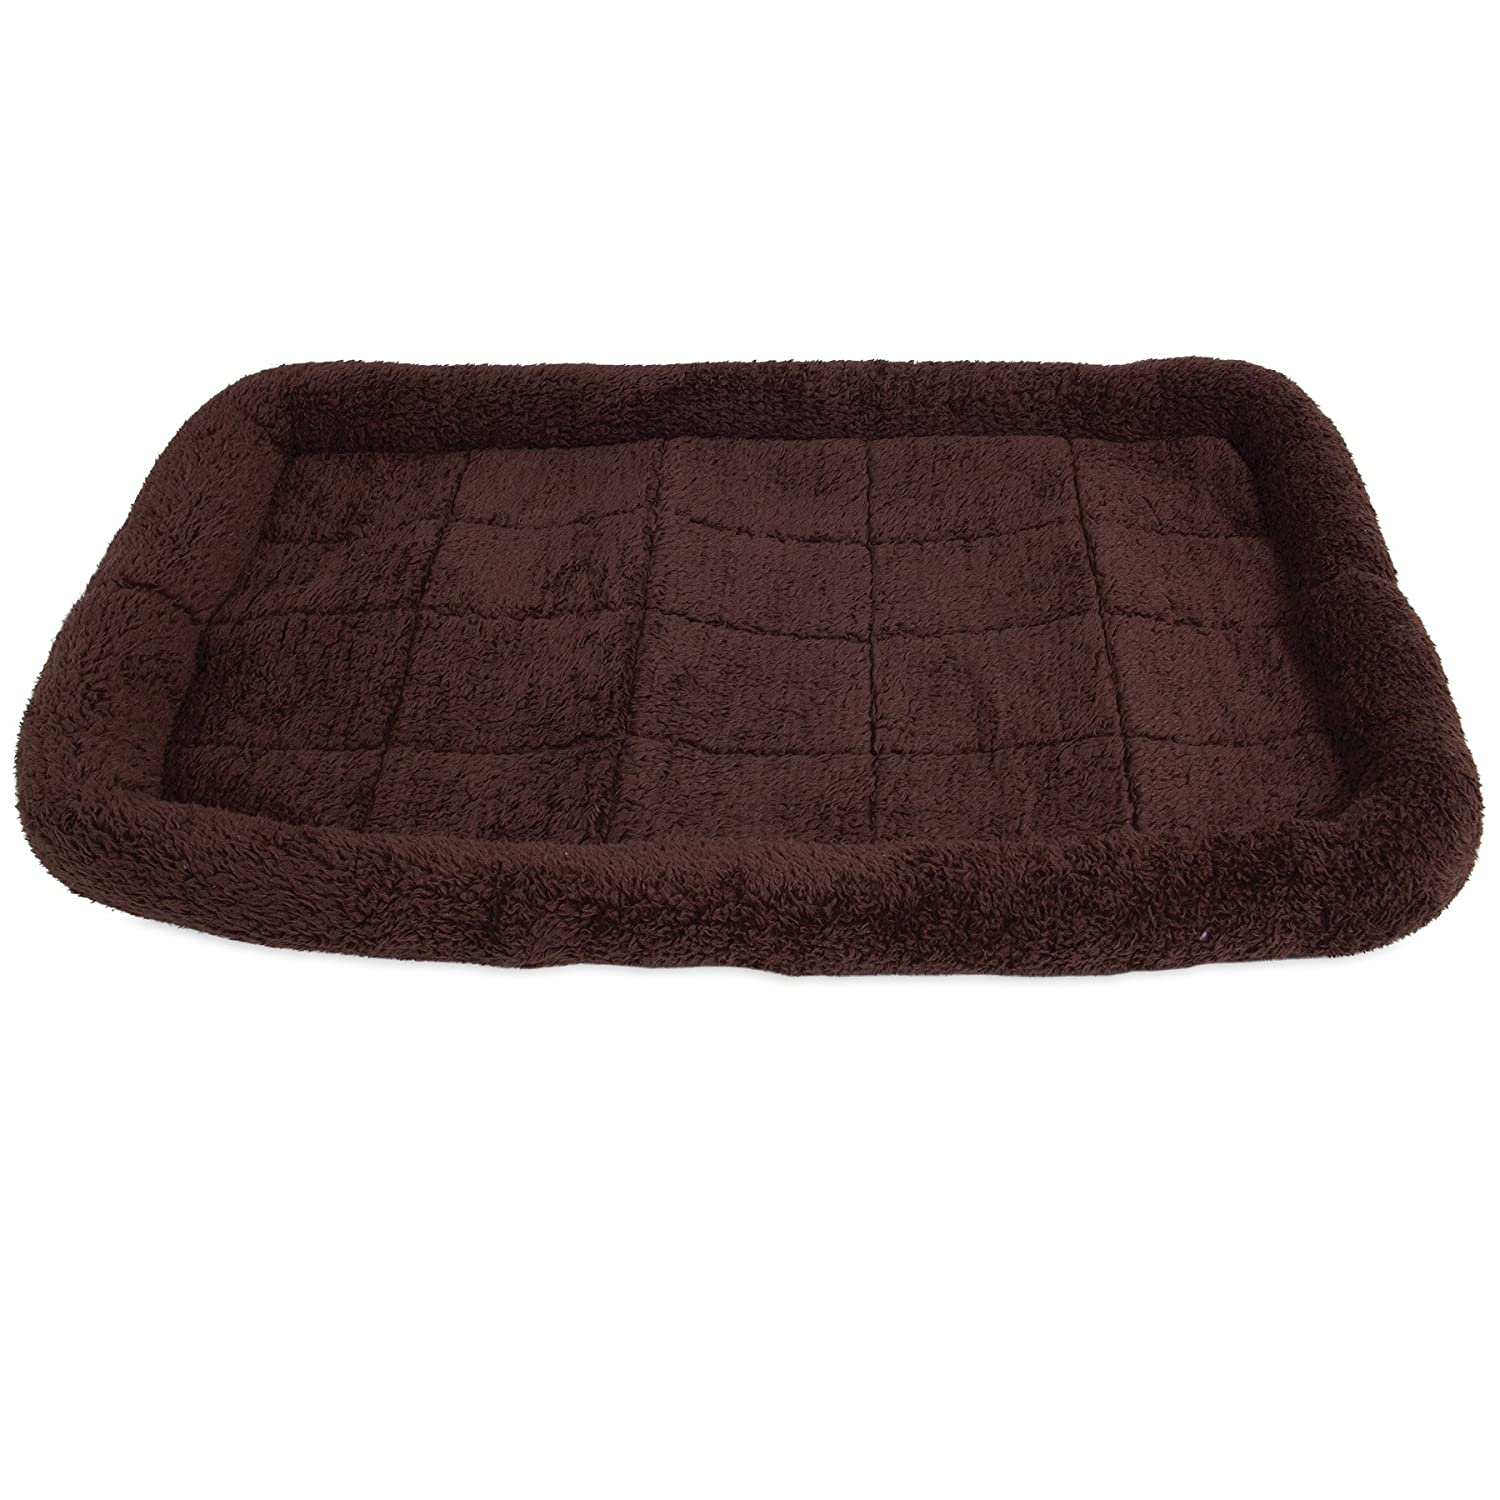 Chocolate Med. Large Chocolate Med. Large Precision Pet SnooZZy Crate Bed 4000, 37-Inch x 25-Inch, Chocolate Cozy